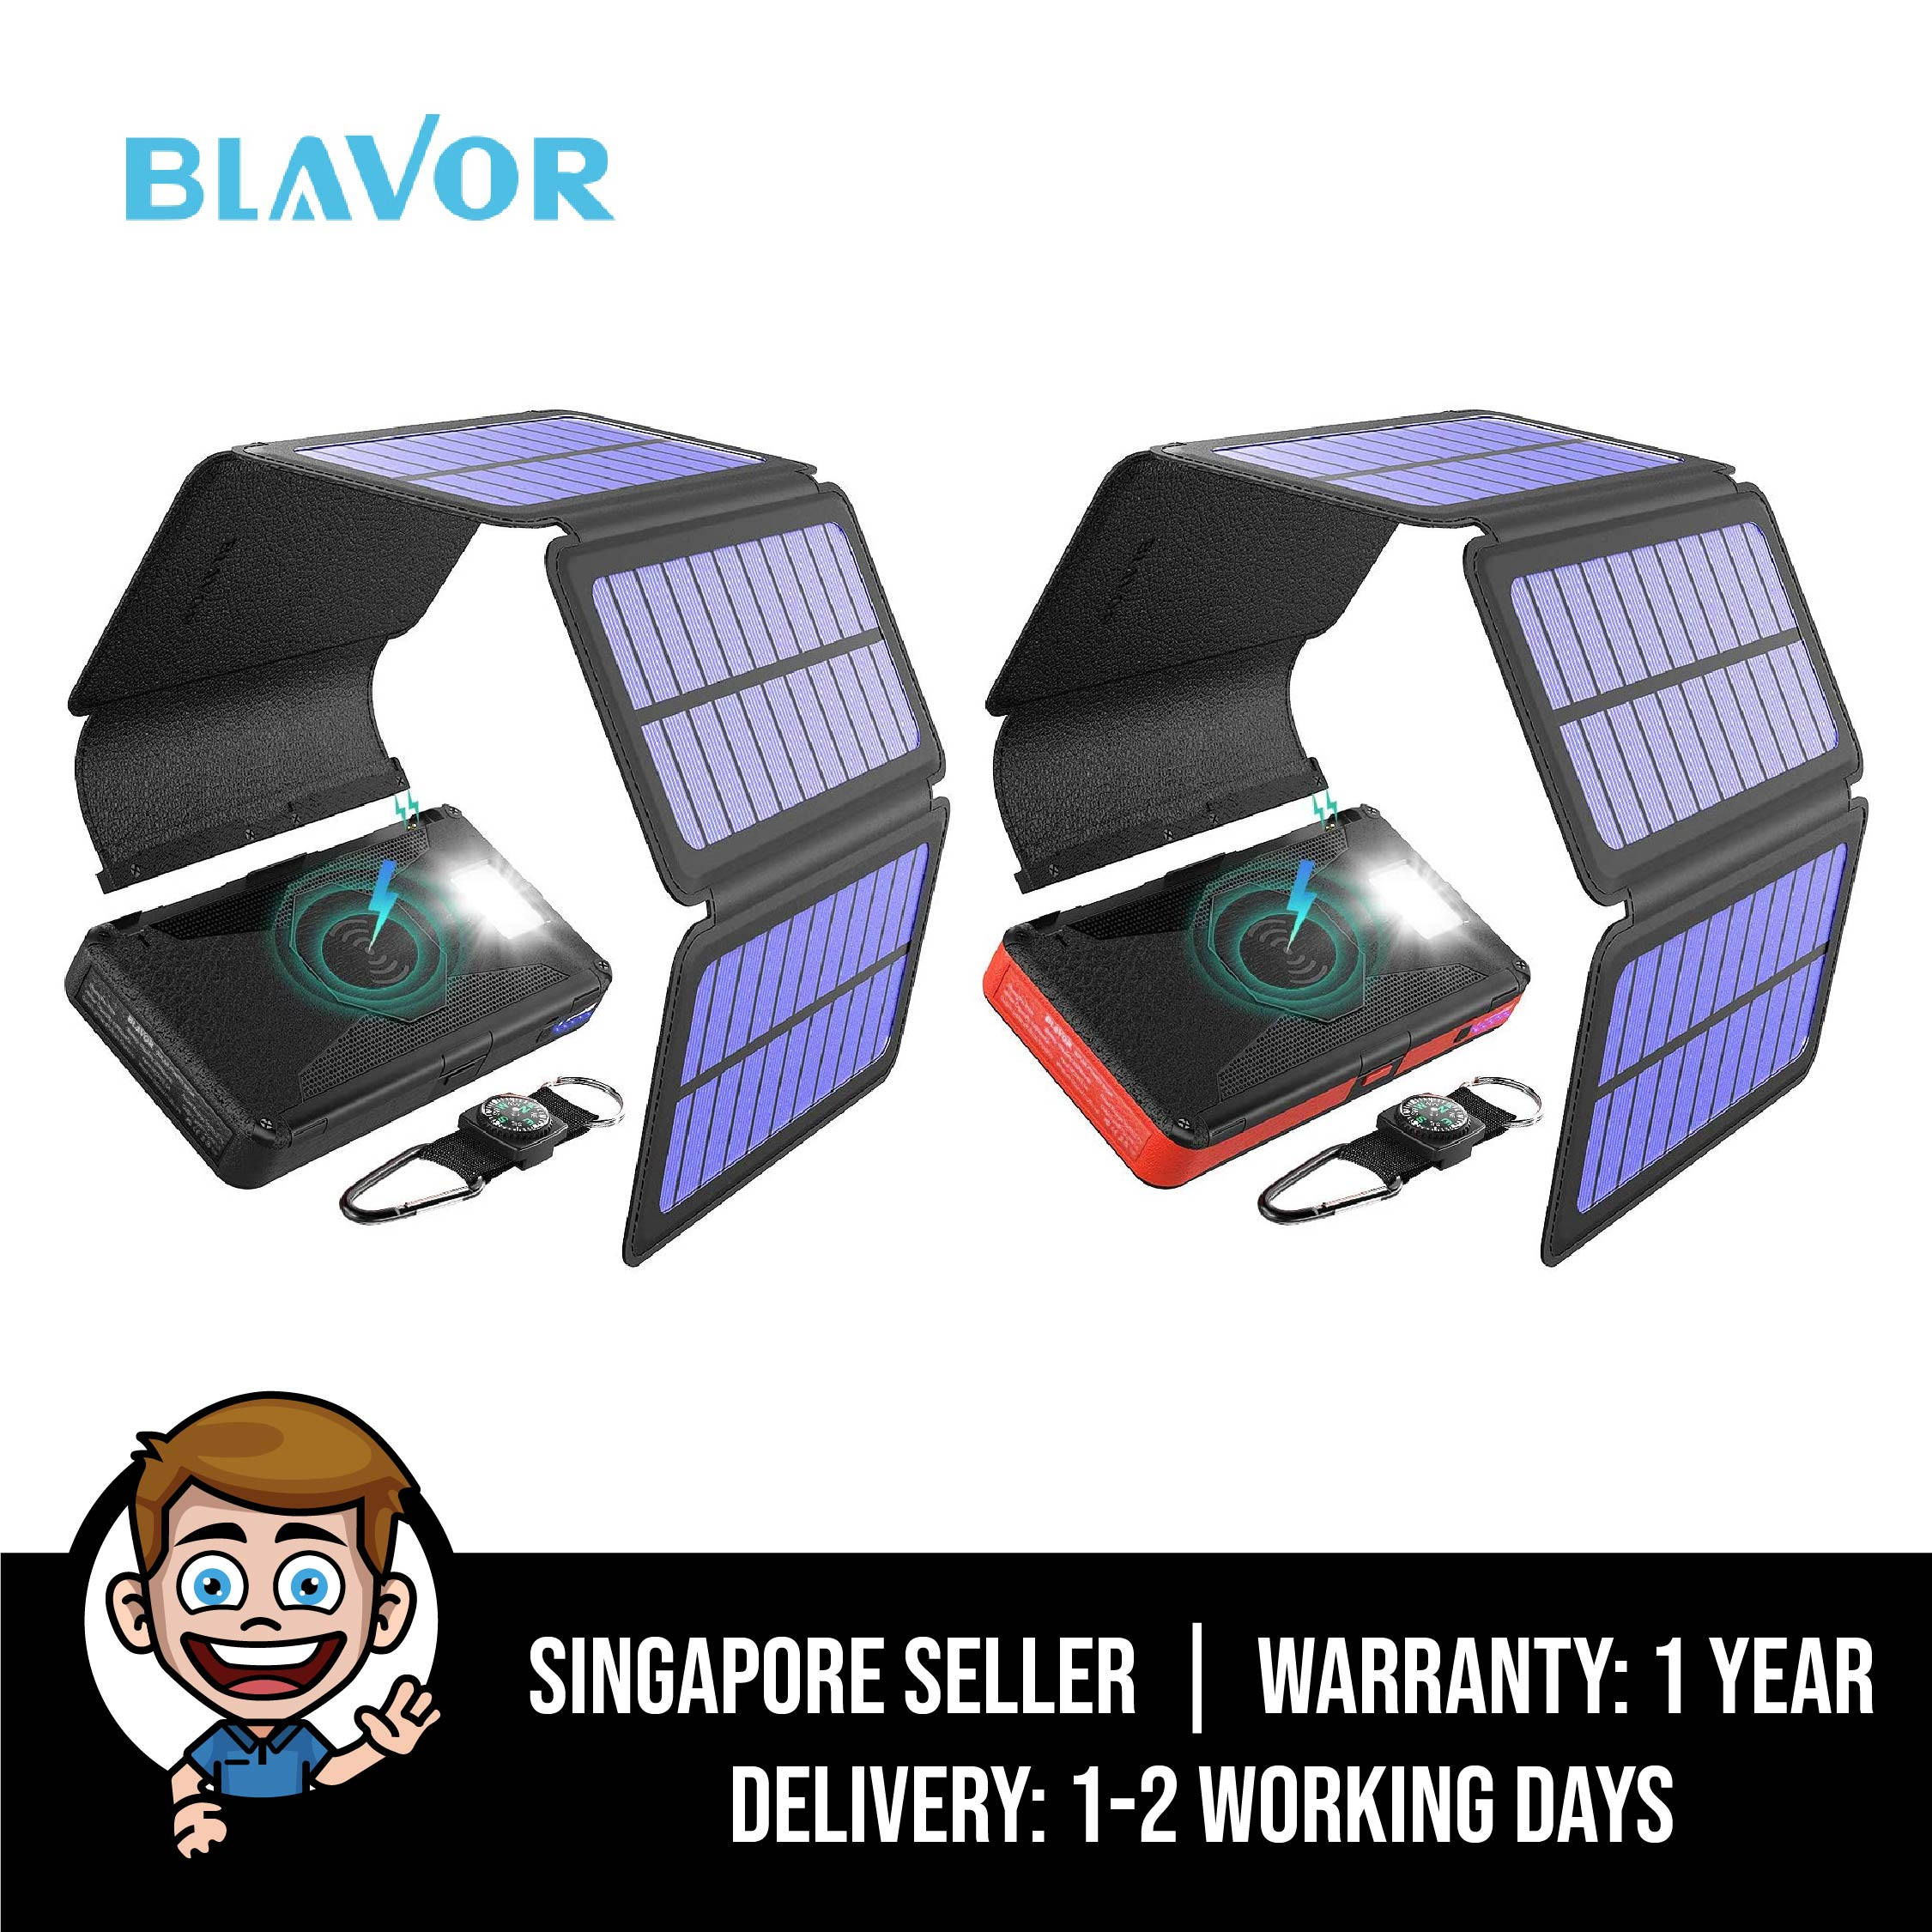 Blavor Solar Charger Five Panels Detachable, Qi Wireless Charger, 20000mah Portable Power Bank With Dual Output, Type C Input, Flashlight And Compass Kit, Emergency Backup Powerbank - Black / Red.